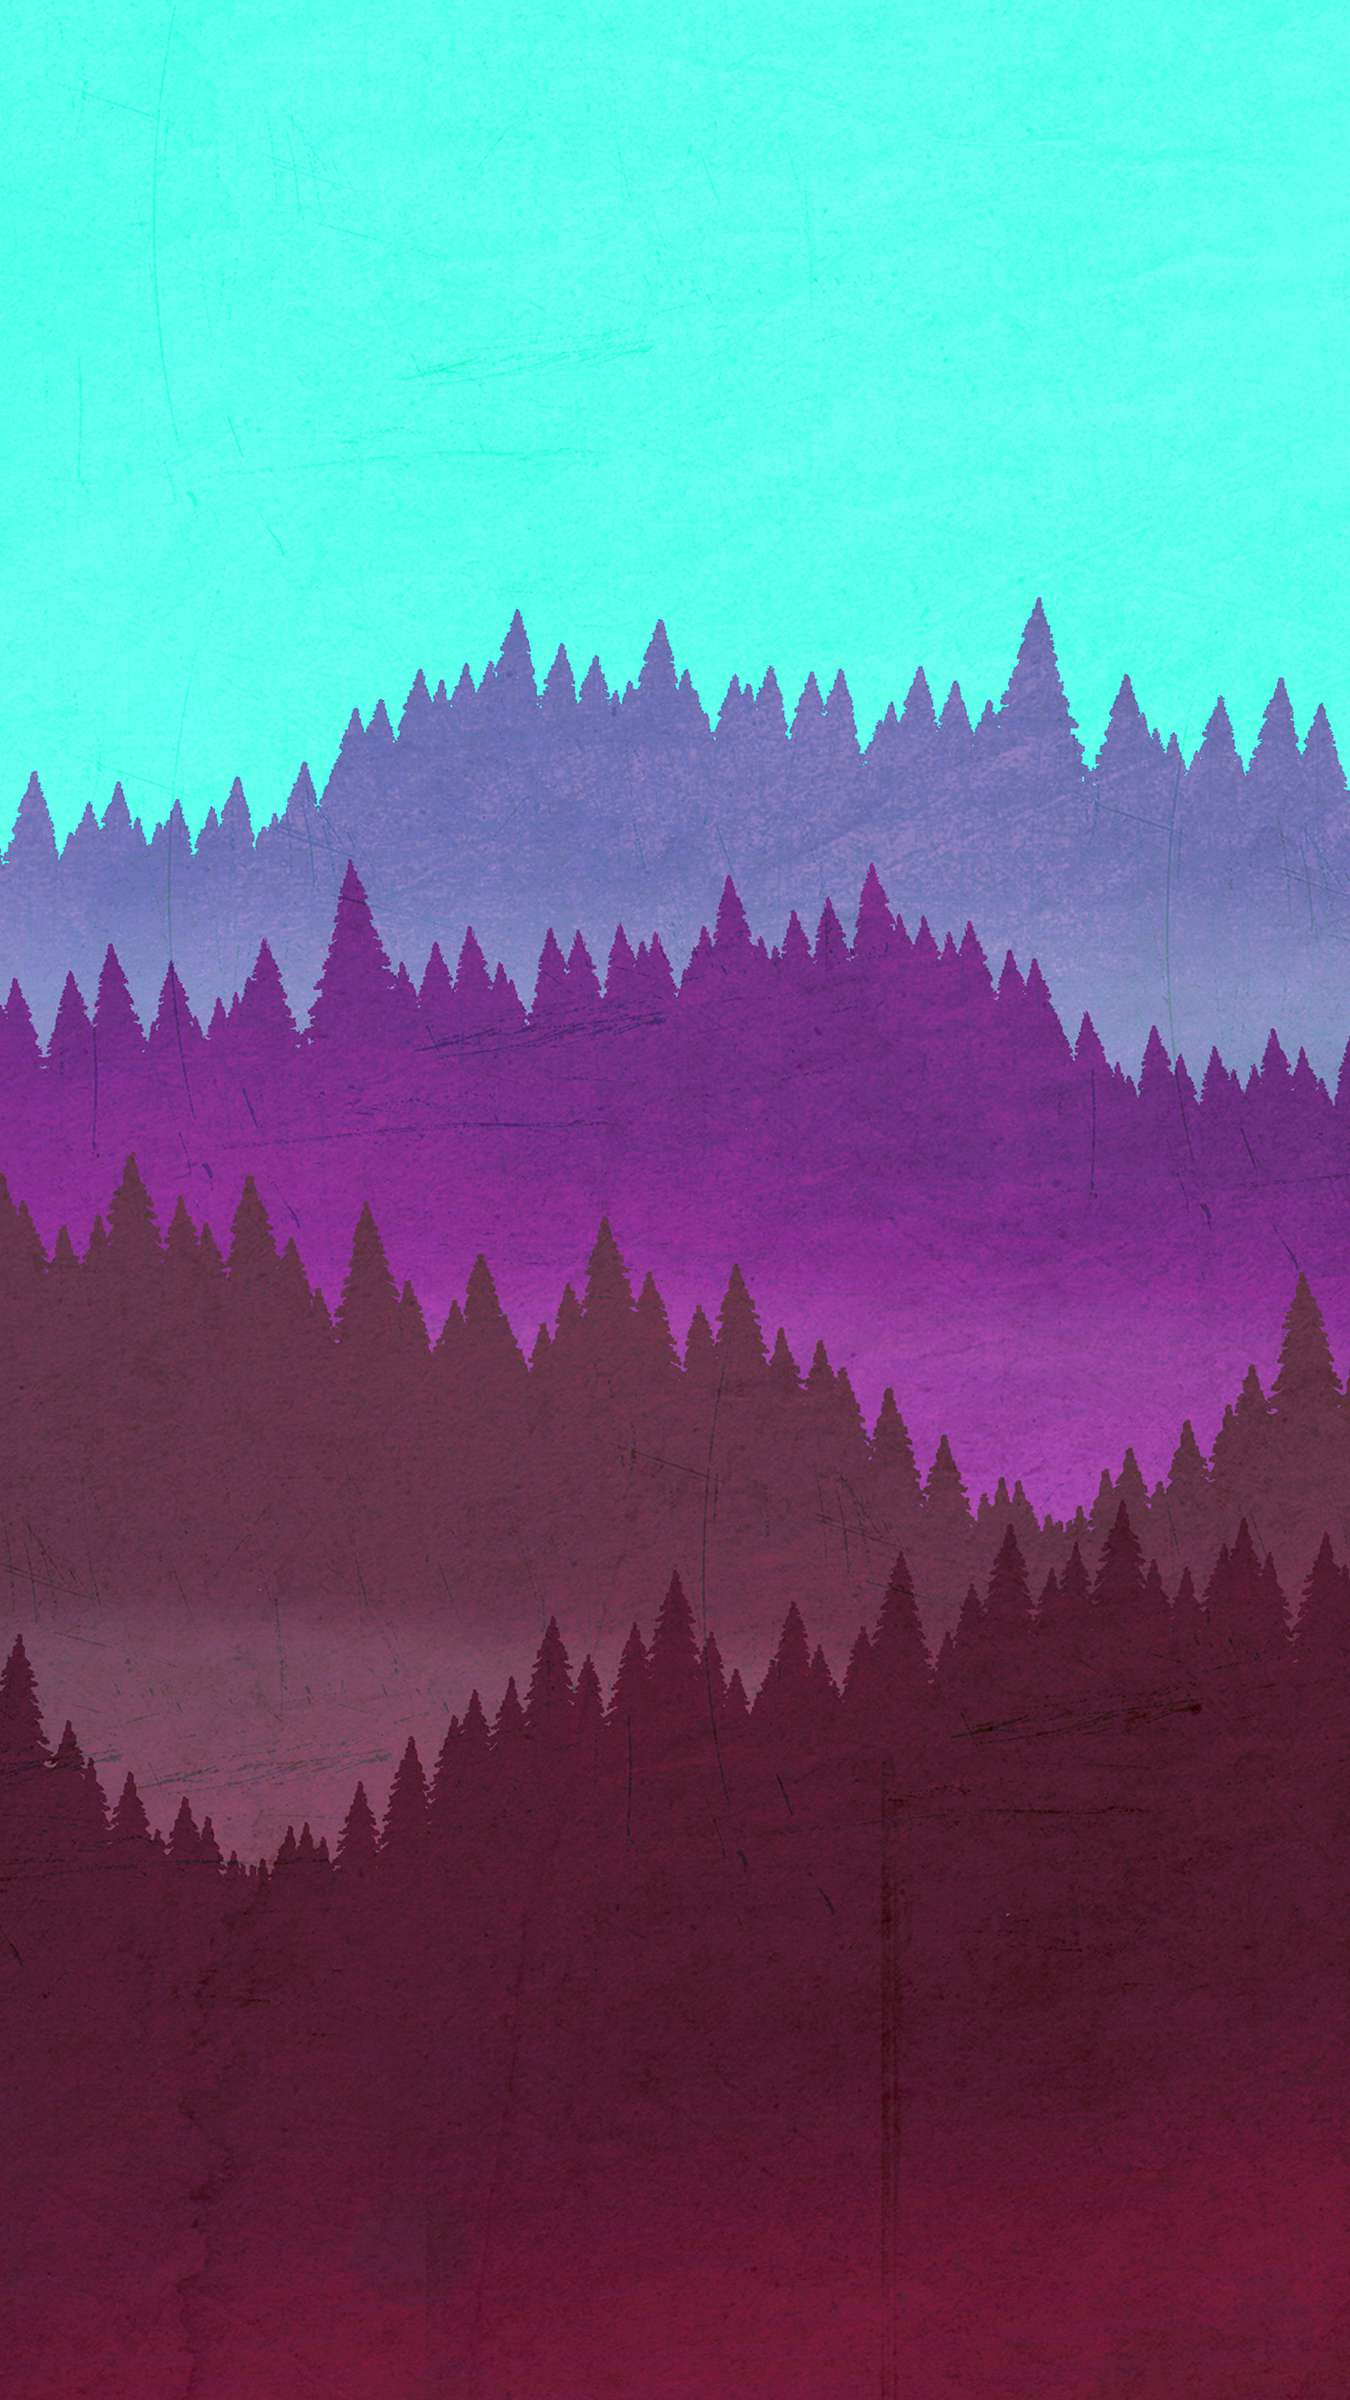 Minimal Forest Artwork iPhone Wallpaper